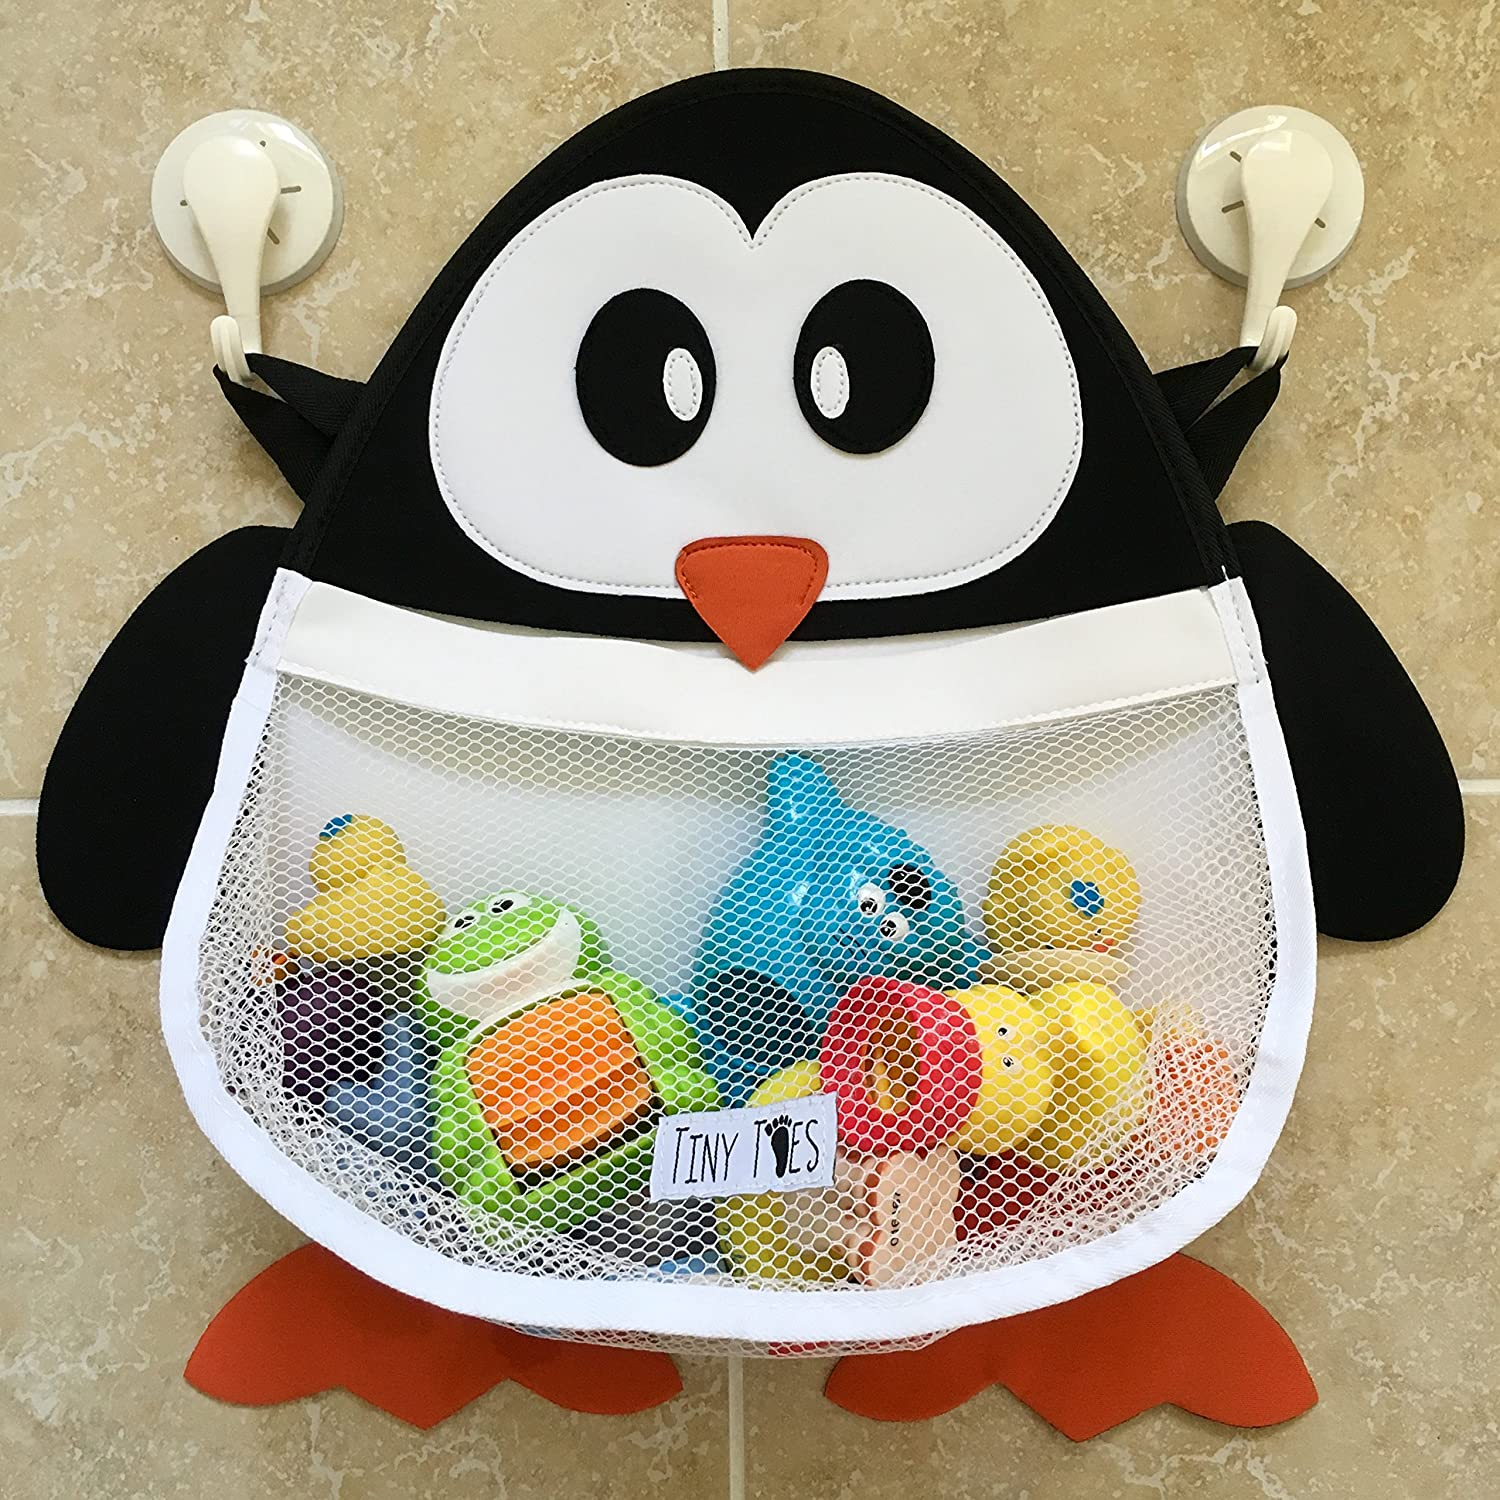 Pip the Penguin Bath Toy Organiser with large capacity Mesh Storage Net and THREE Self-Adhesive Heavy-Duty Strong Reusable Suction Cups that are guaranteed to stick - by TinyToes